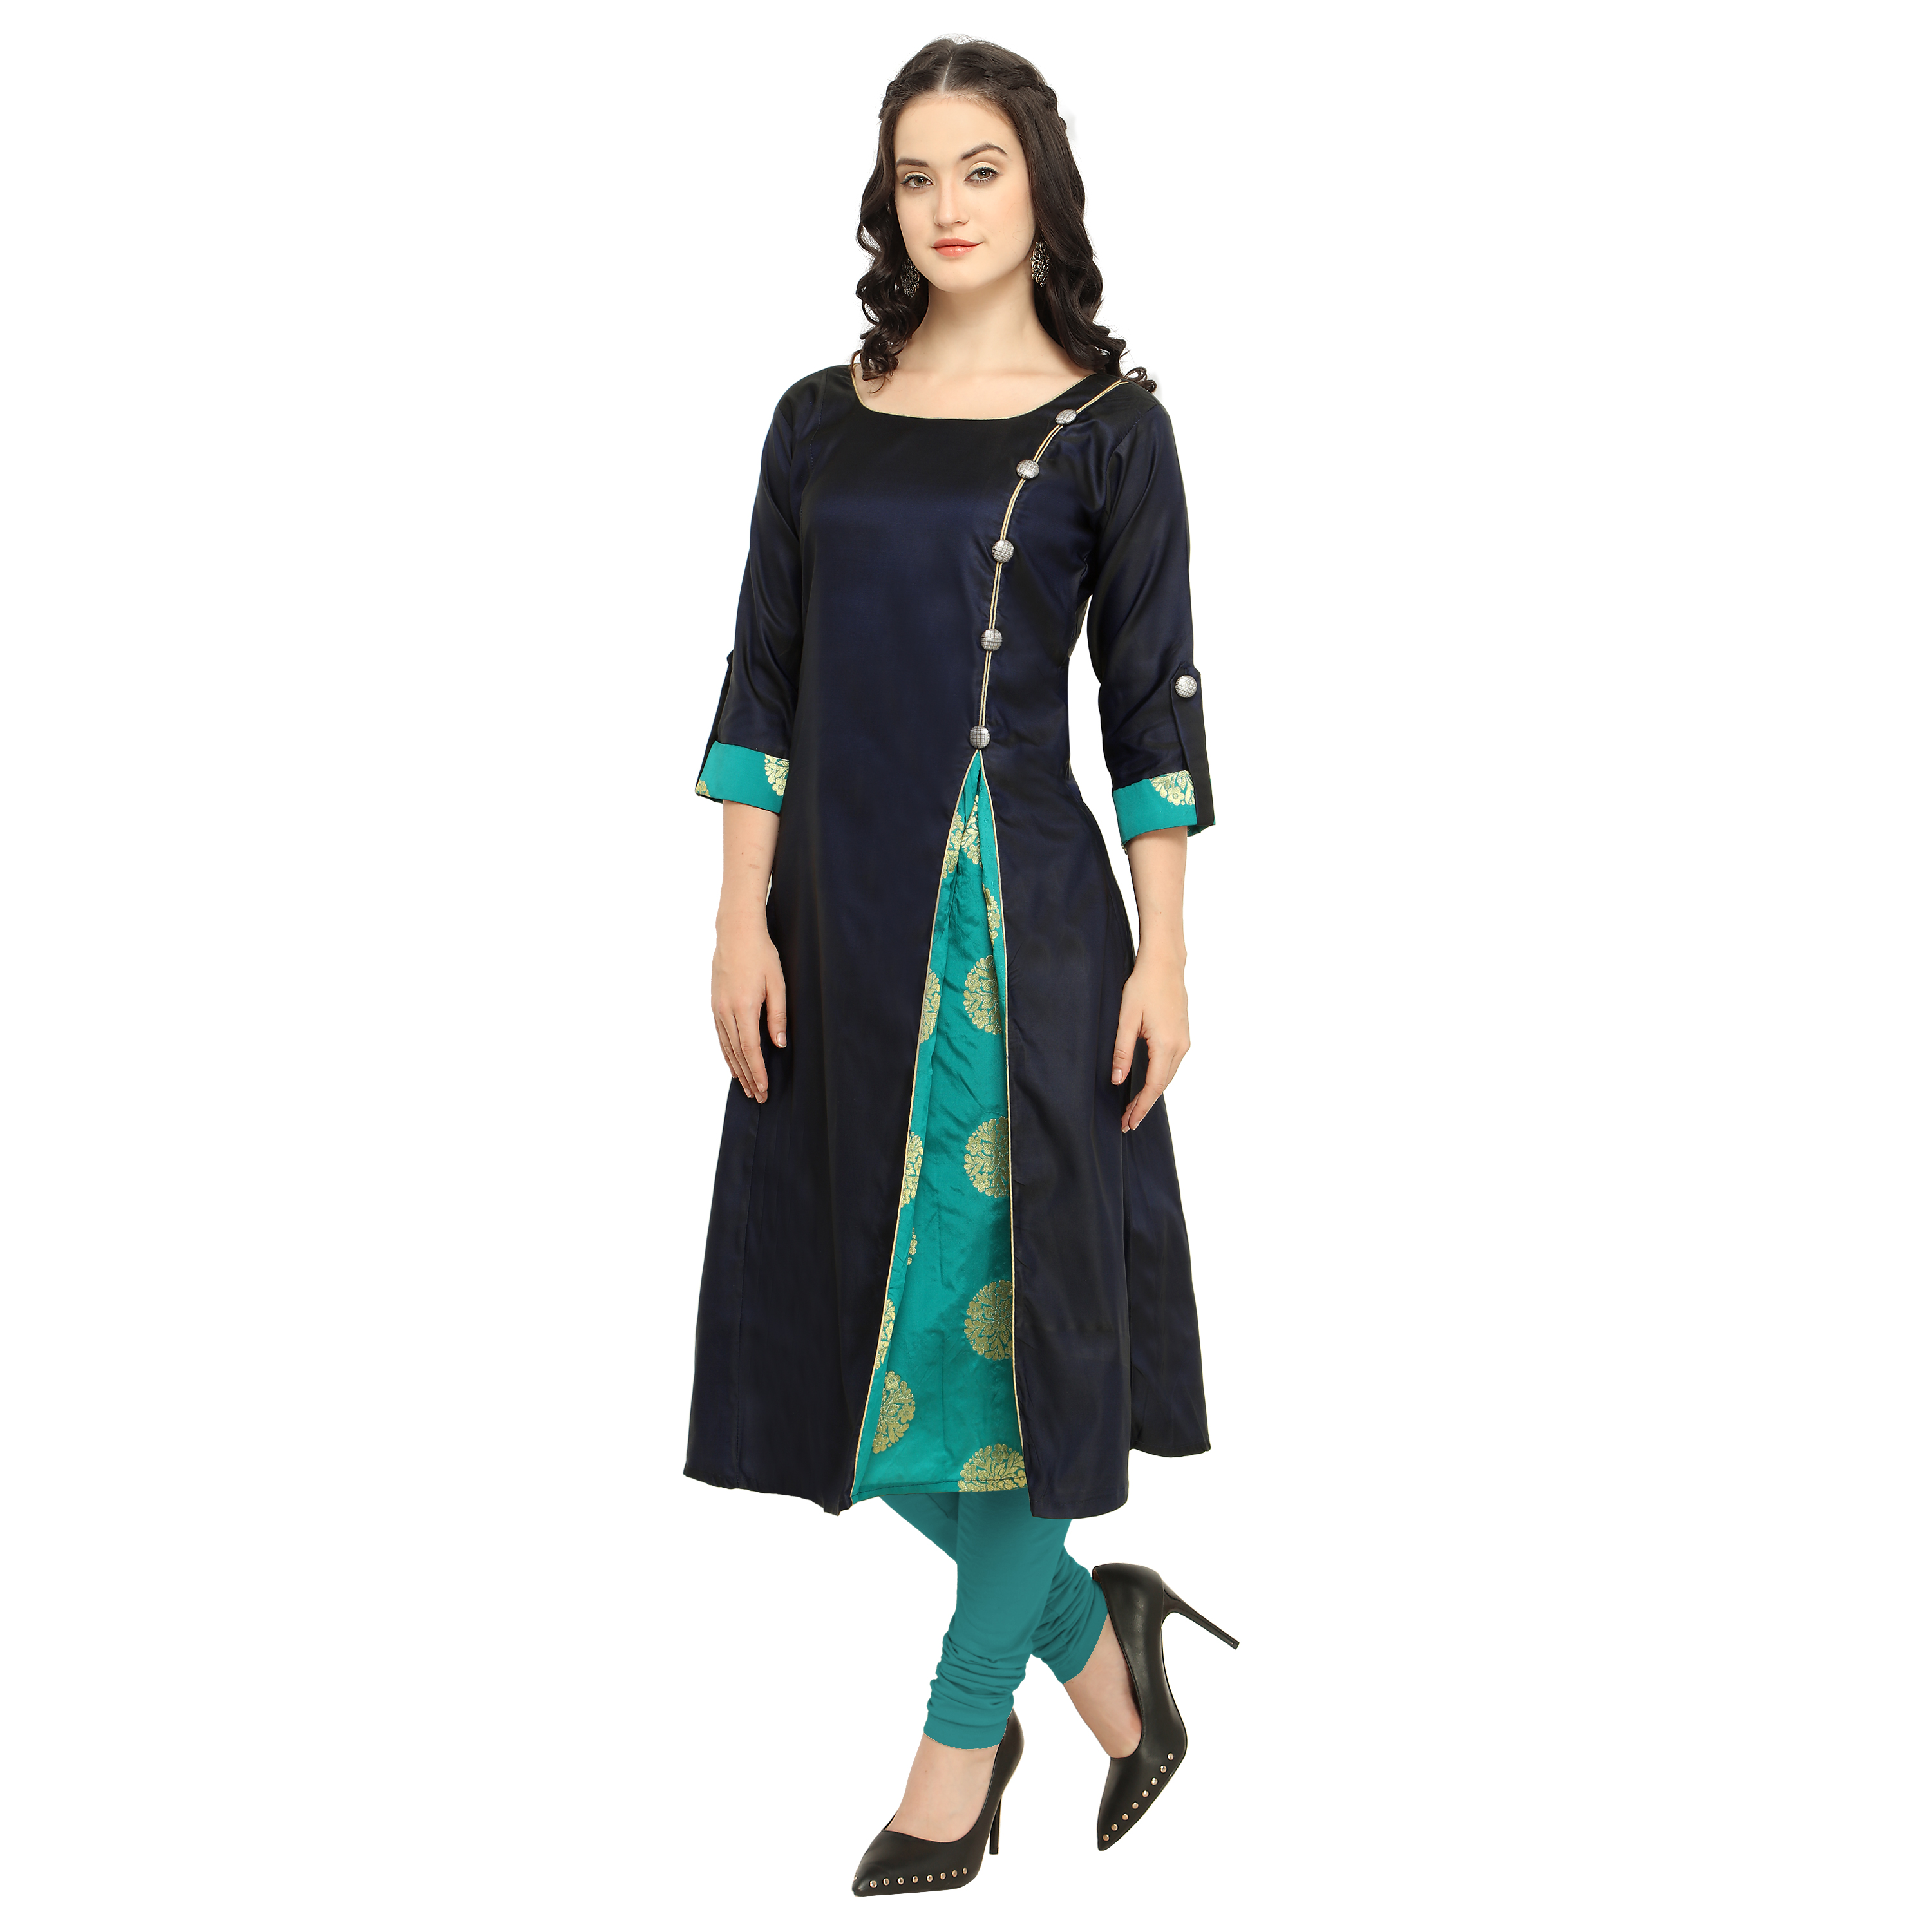 d9a99d7a6 Maxi Dresses Online India For Party